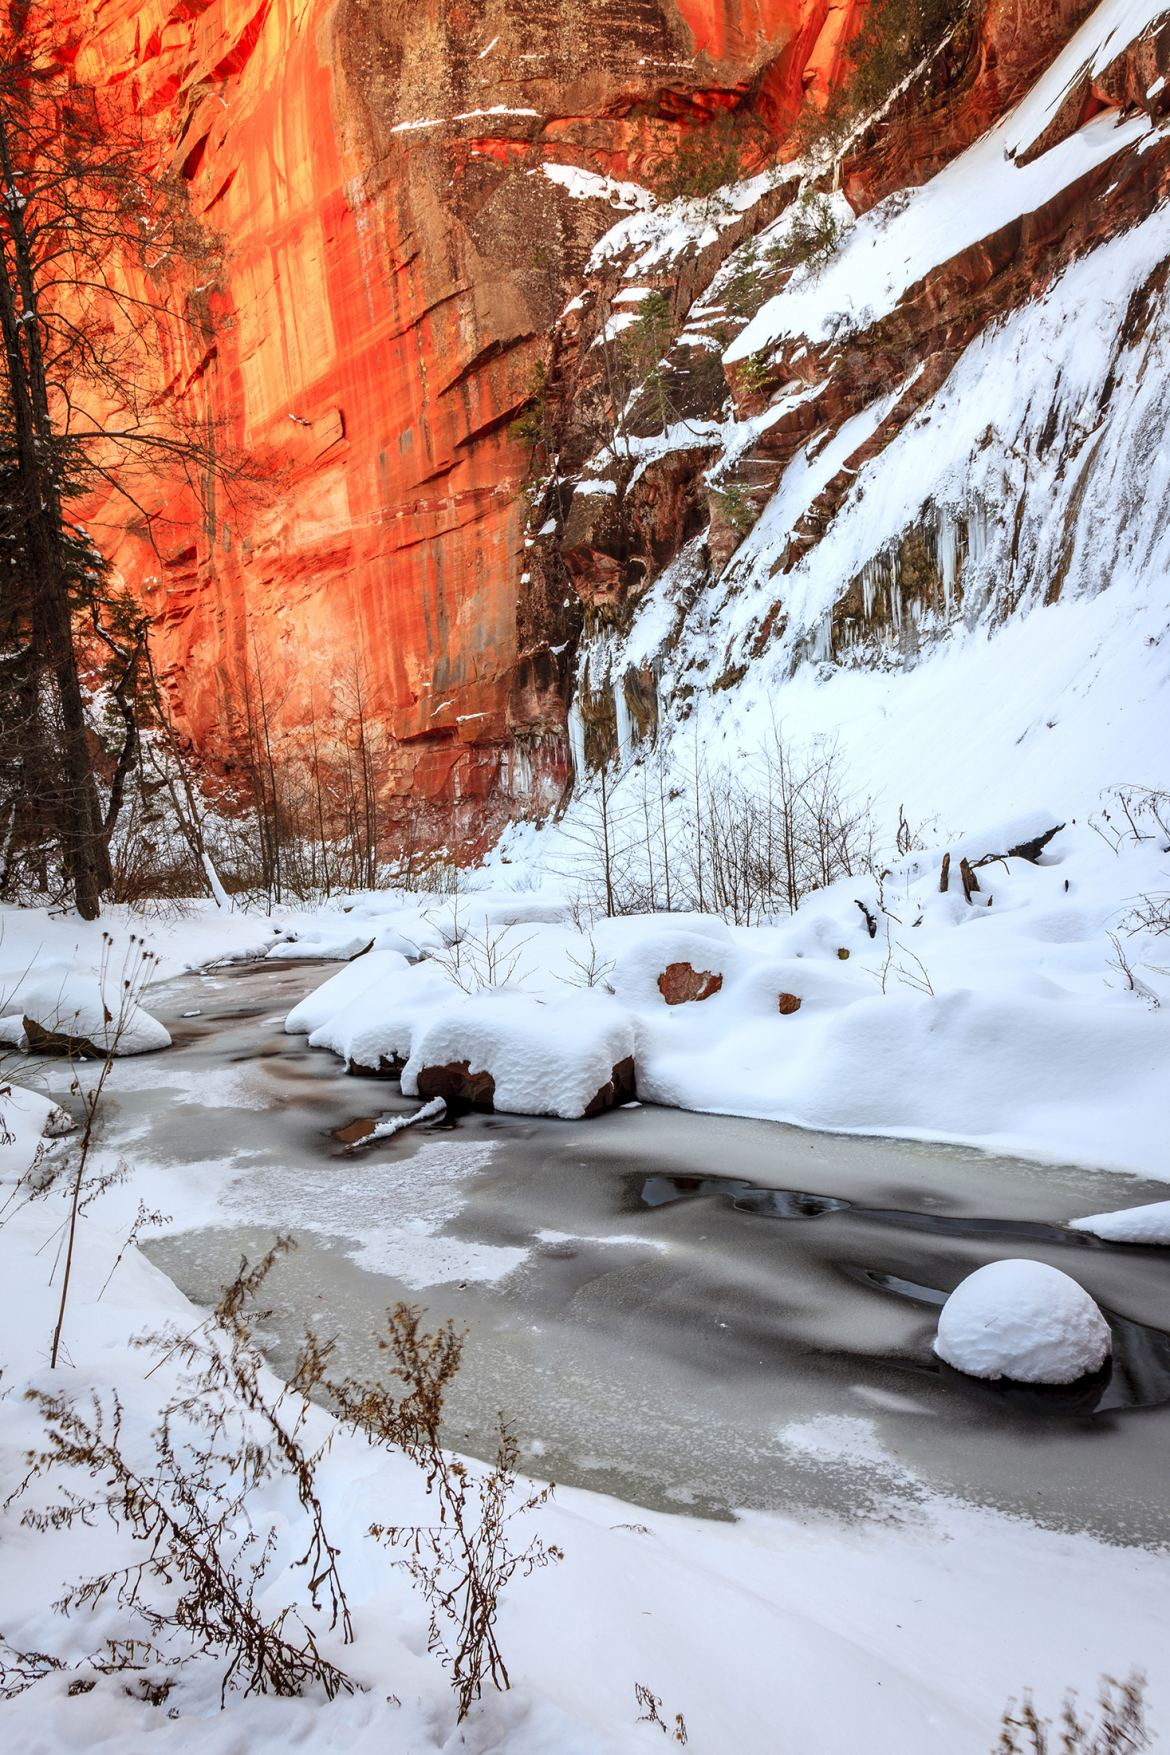 Snow Covered Oak Creek Winds Through Glowing Red Rocks